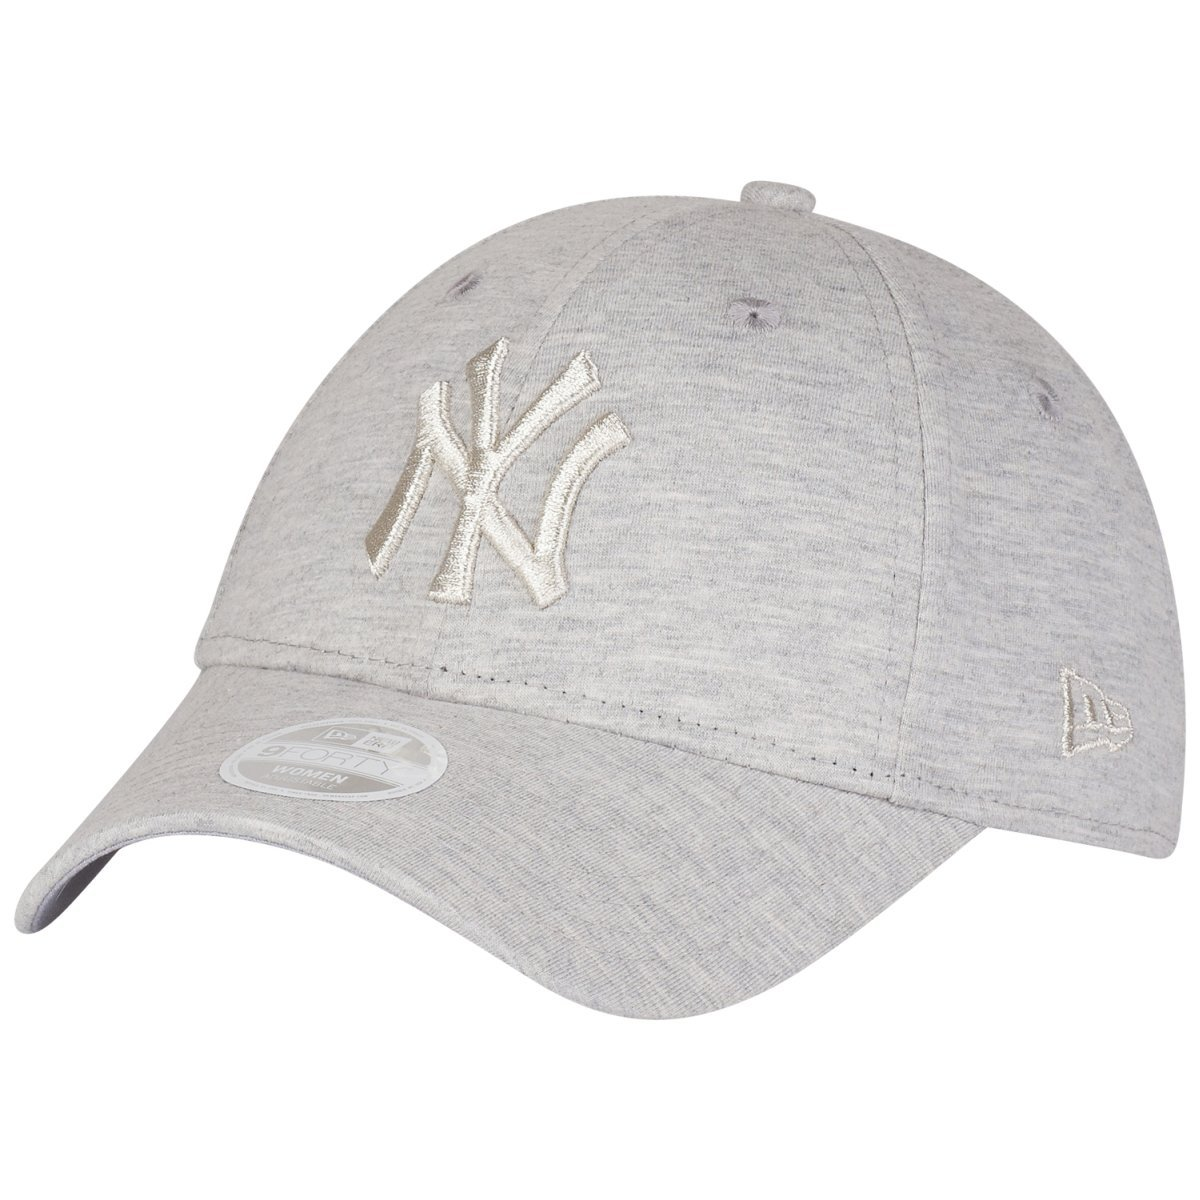 94d73f19af4 New Era Womens 9FORTY York Yankees Baseball Cap - Essential Jersey - Grey   Amazon.co.uk  Clothing